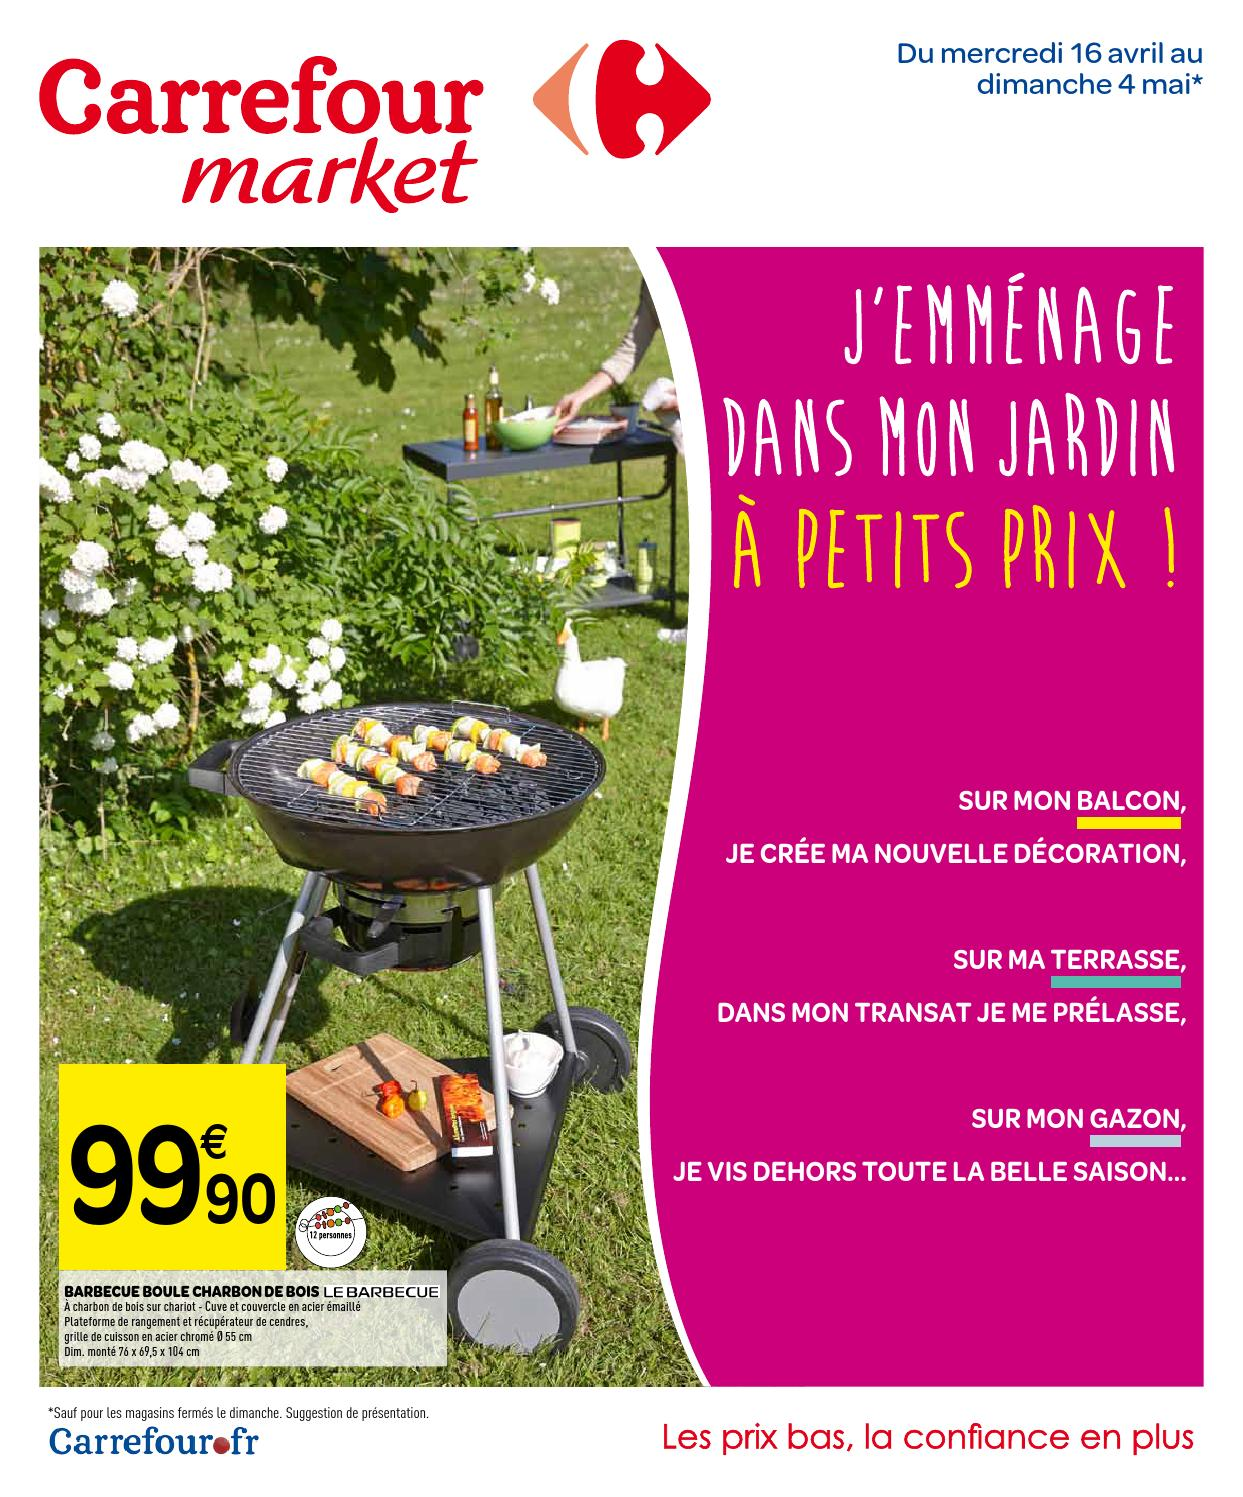 Catalogue Carrefour Market 1604 4052014 By Joe Monroe